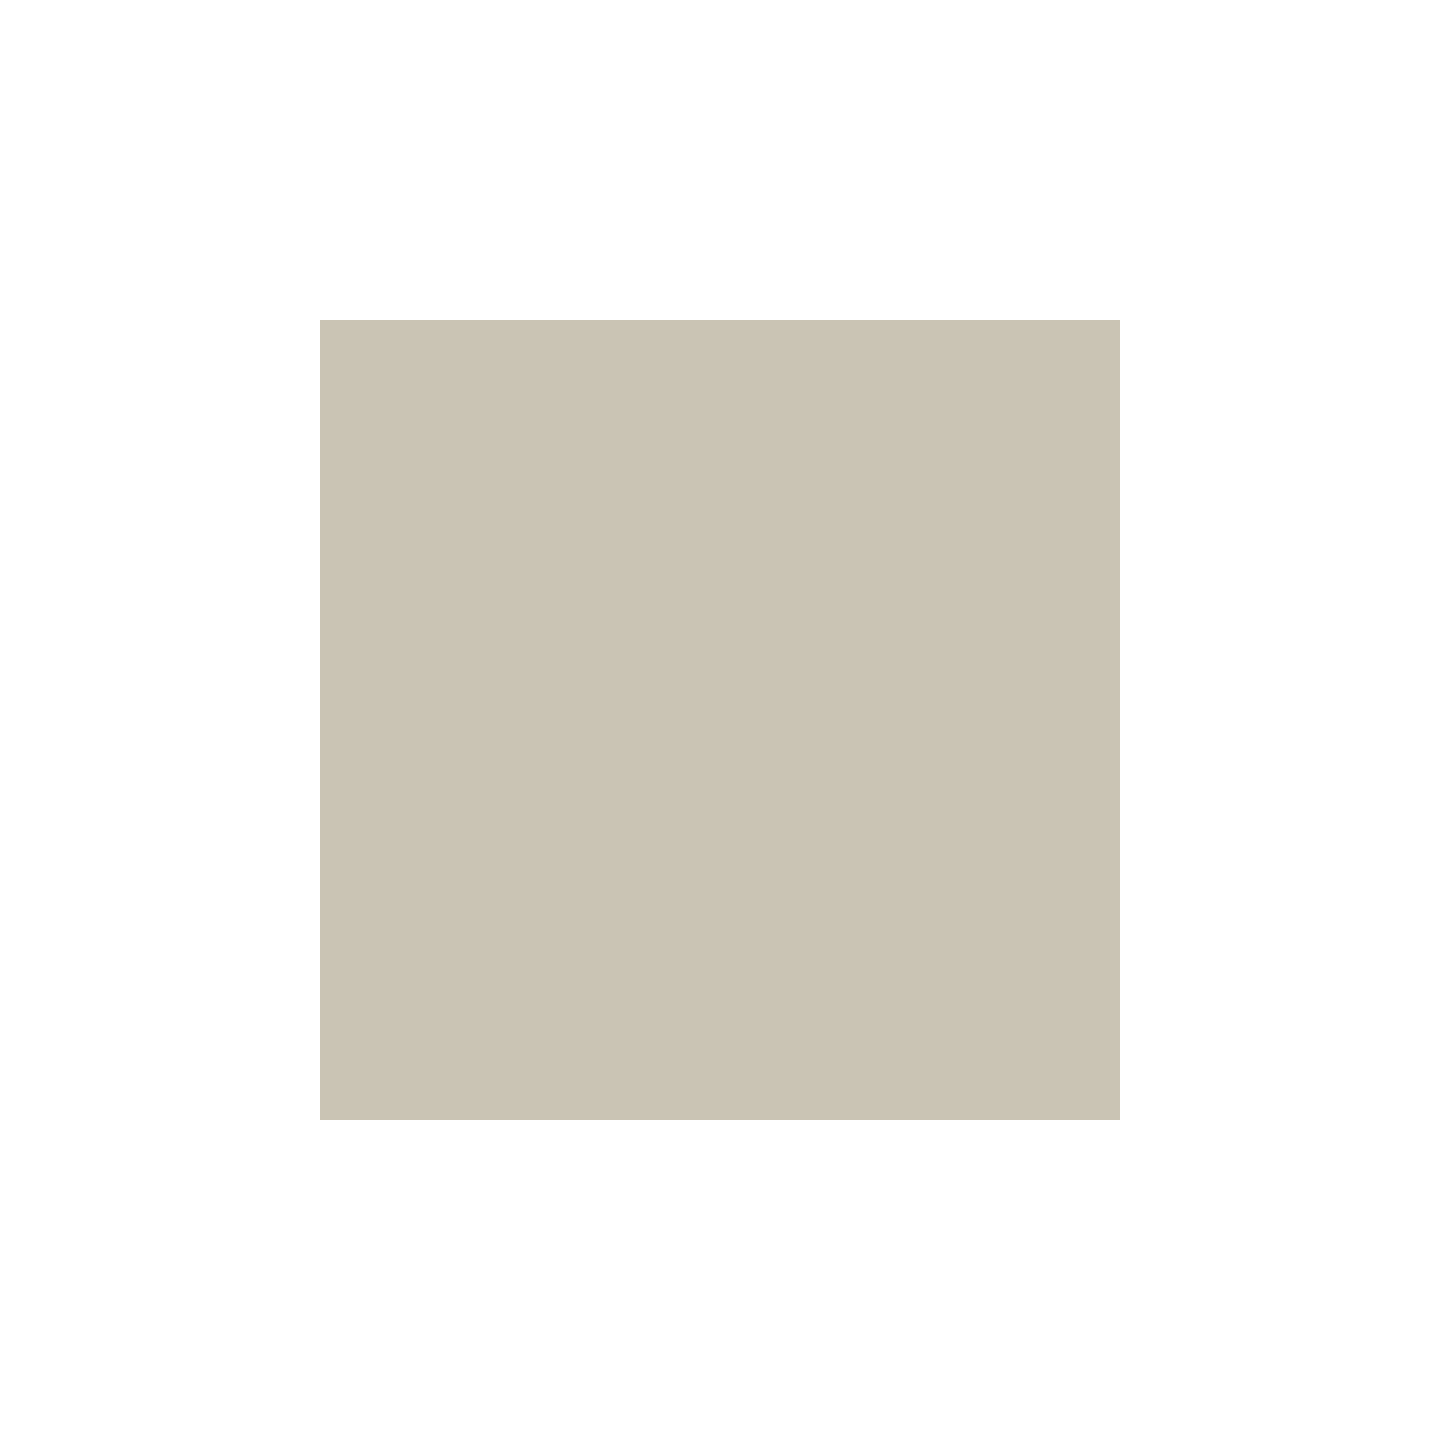 Little Greene Lead Colour Paint 117 For Sale: Little Greene Paint Co. Intelligent Eggshell, Mid Greys At